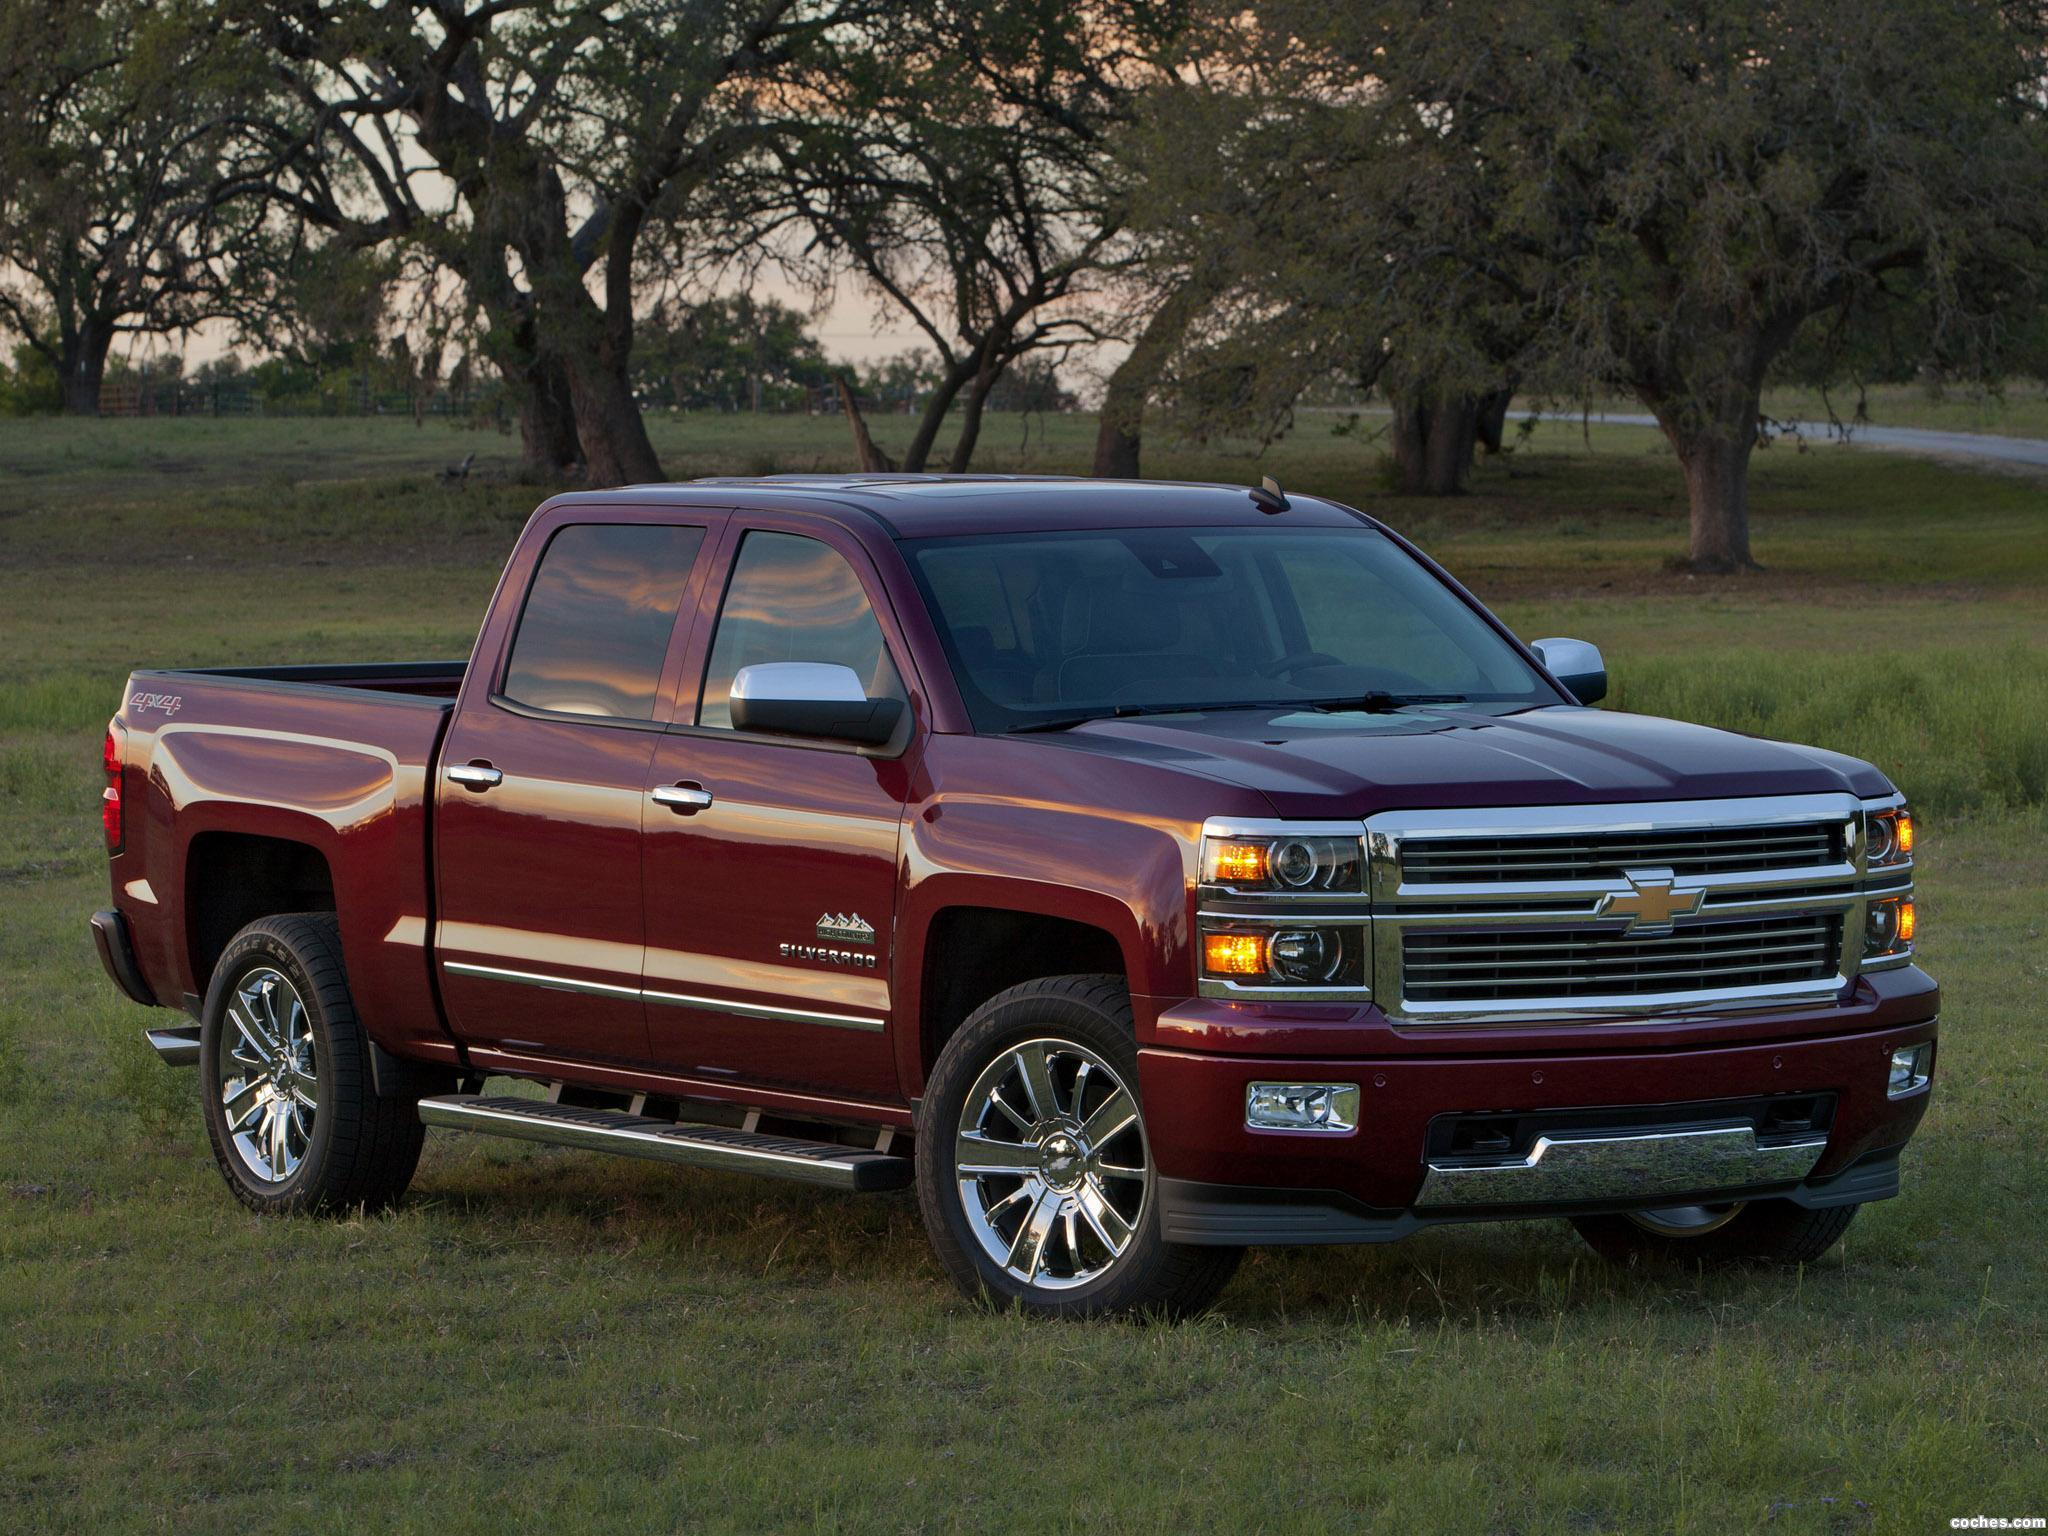 Foto 11 de Chevrolet Silverado High Country Crew Cab 2013